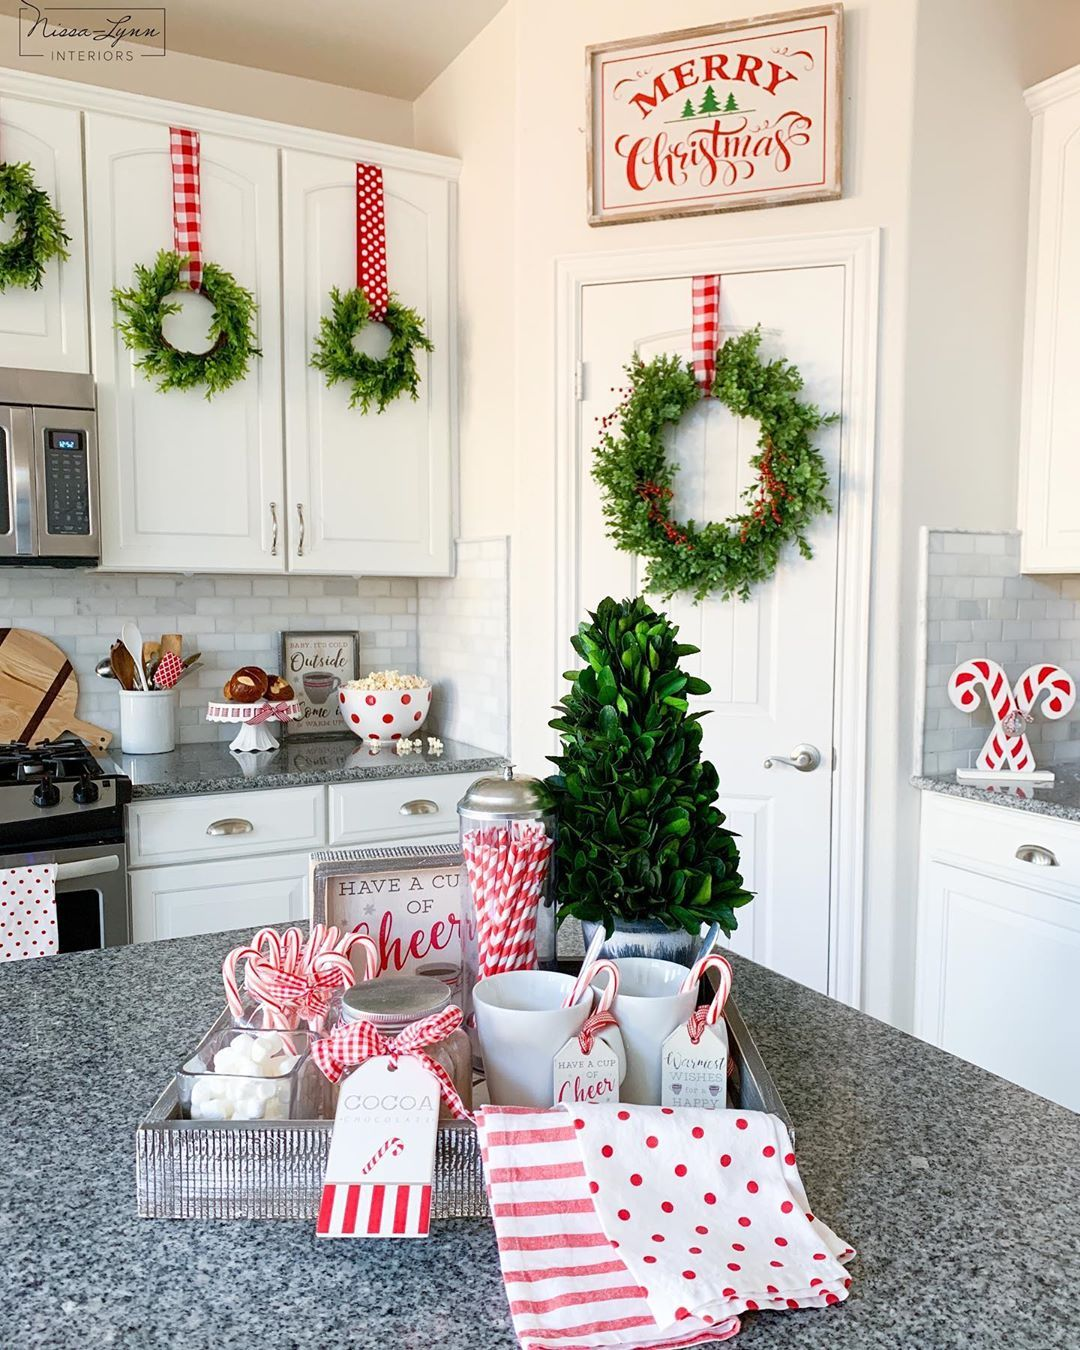 Nissa Lynn Parson On Instagram It Feels Like Christmas In The Kitchen Putting These Wr Christmas Kitchen Decor Fun Christmas Decorations Christmas Decor Diy